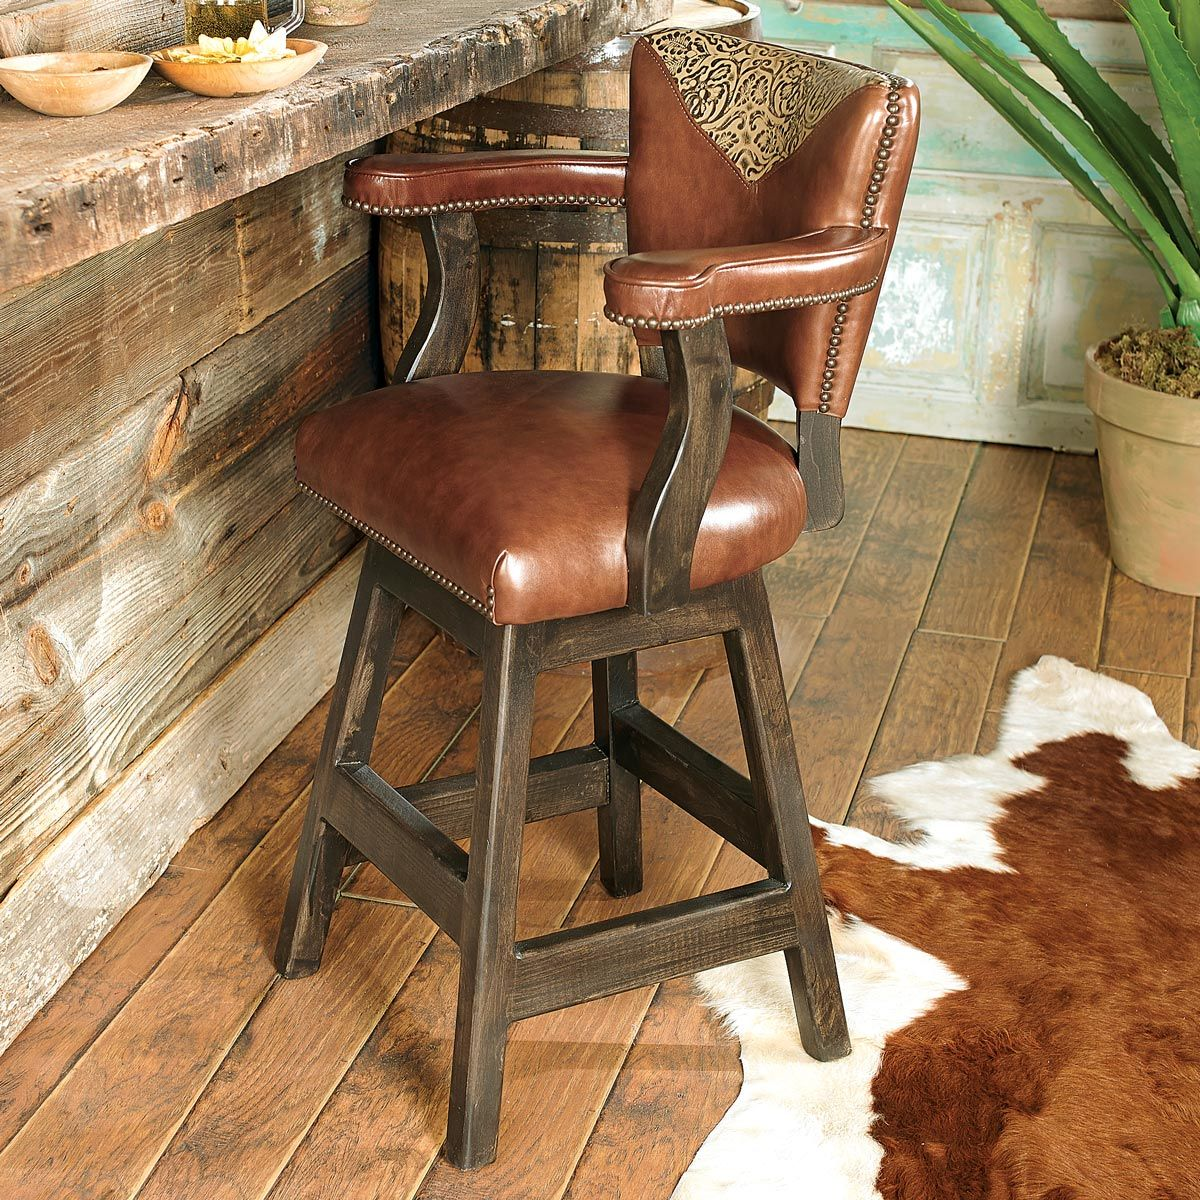 Western furniture waller western tooled leather barstoollone star western decor